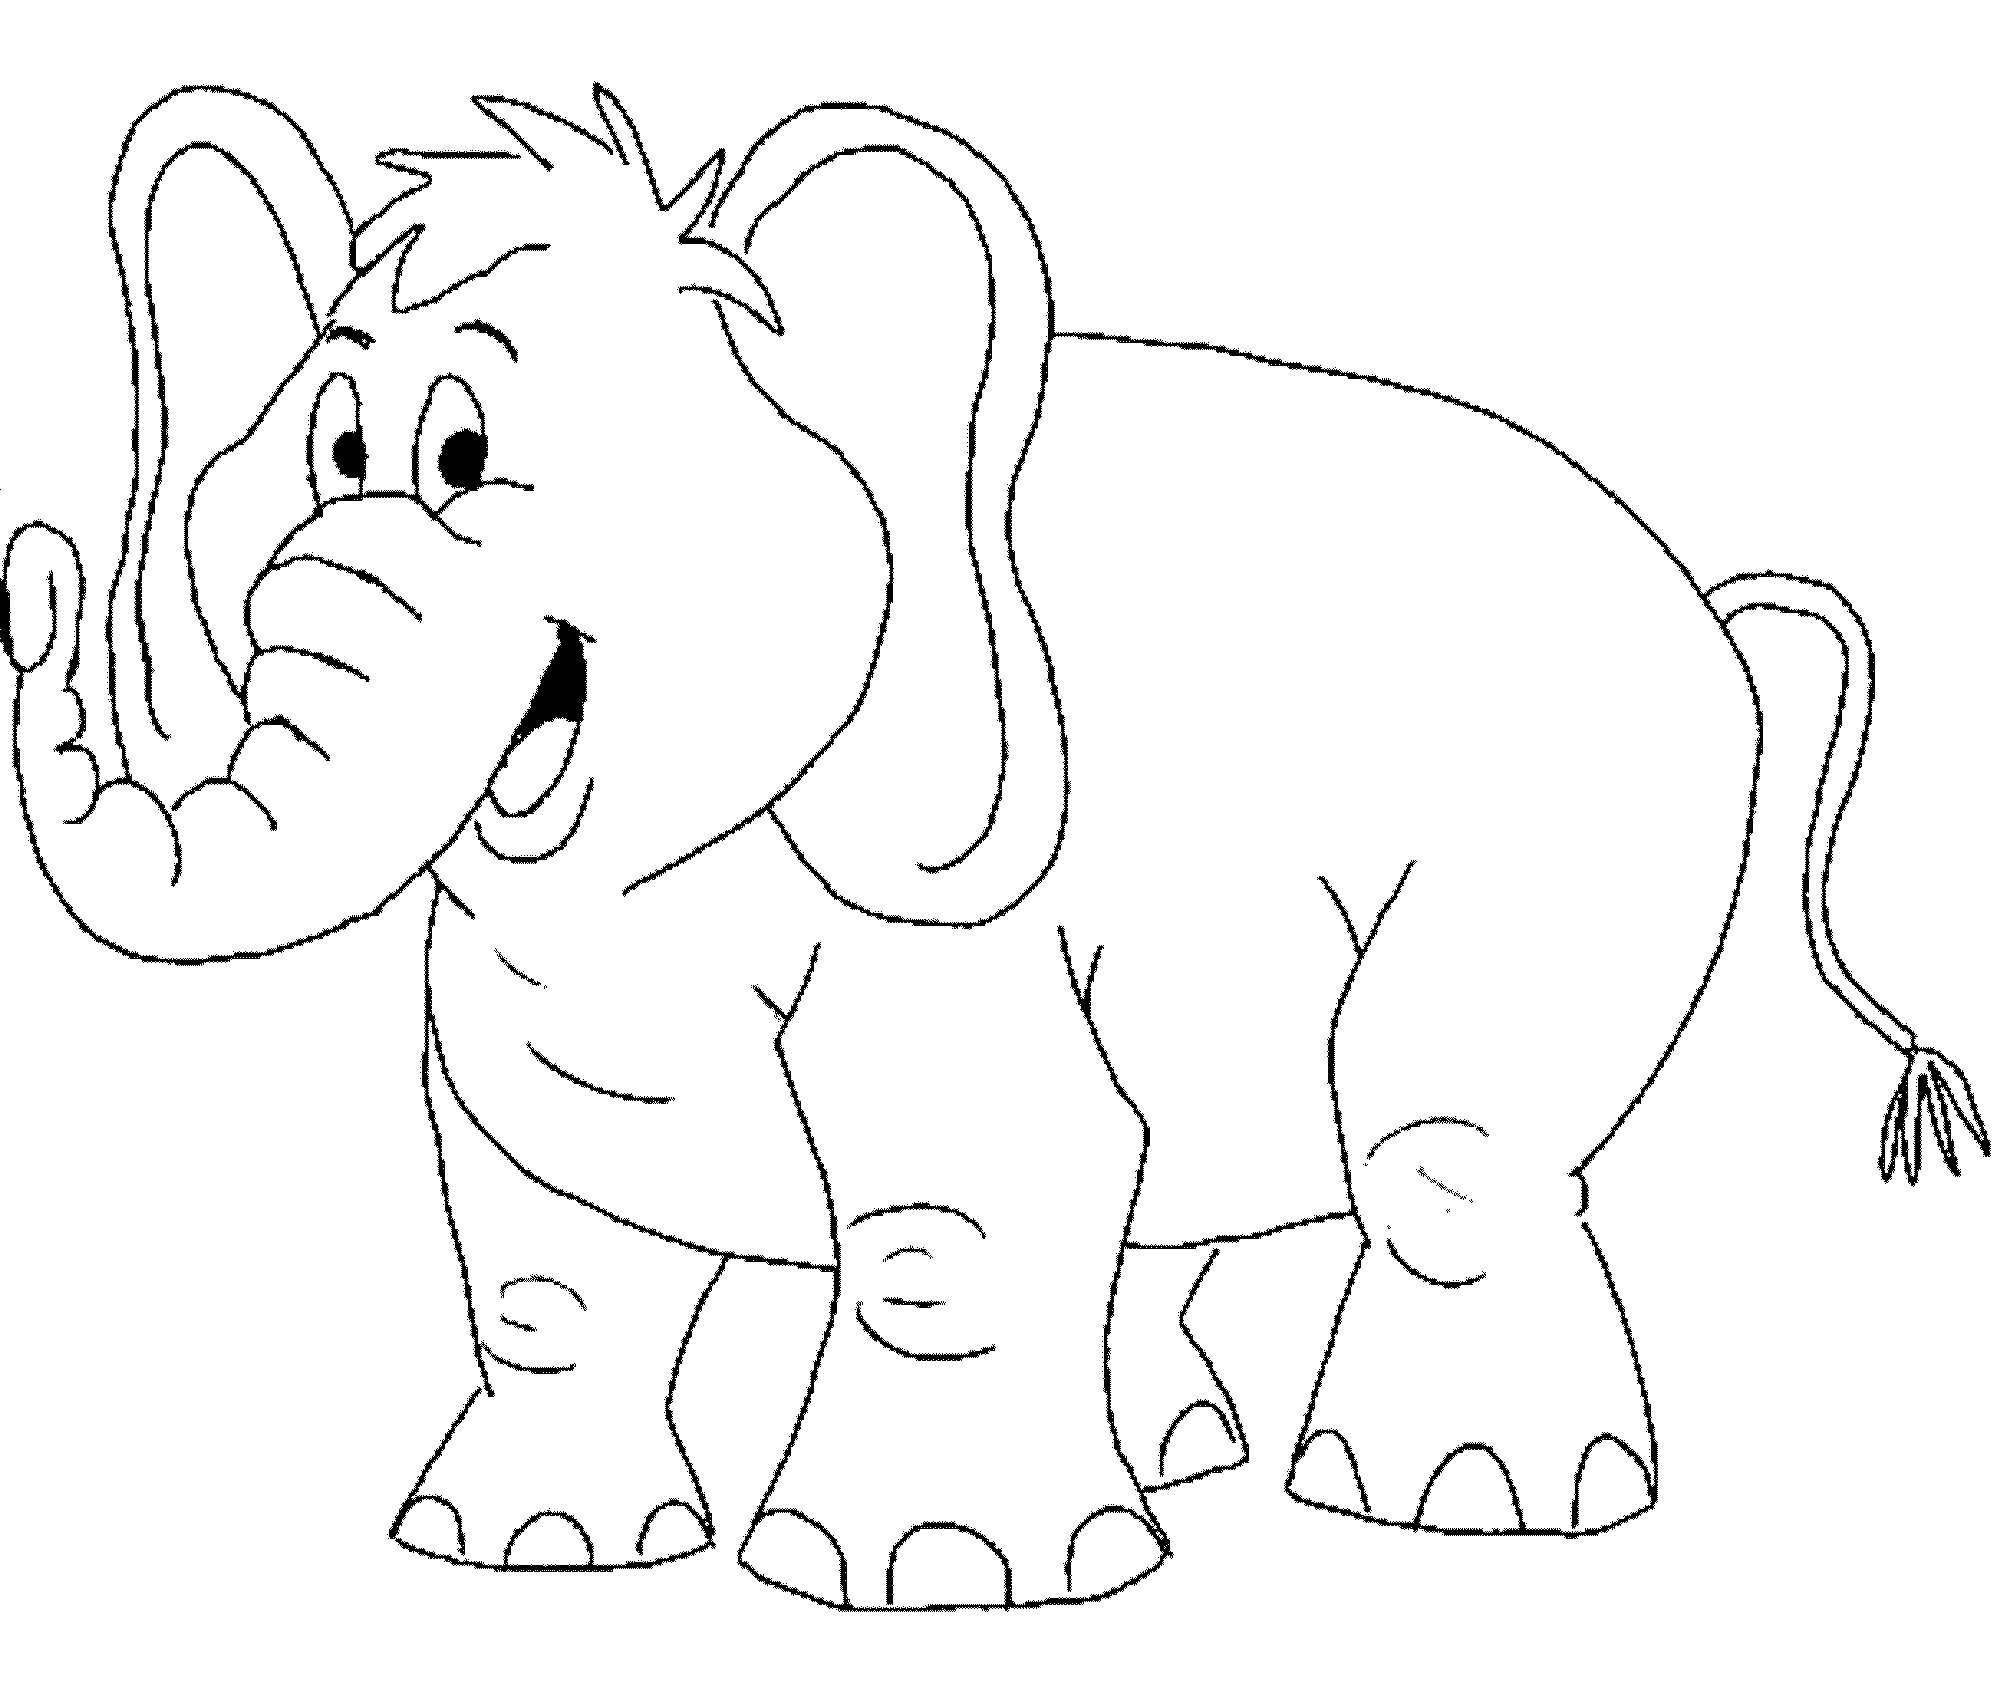 colouring picture of elephant print download teaching kids through elephant coloring elephant picture colouring of